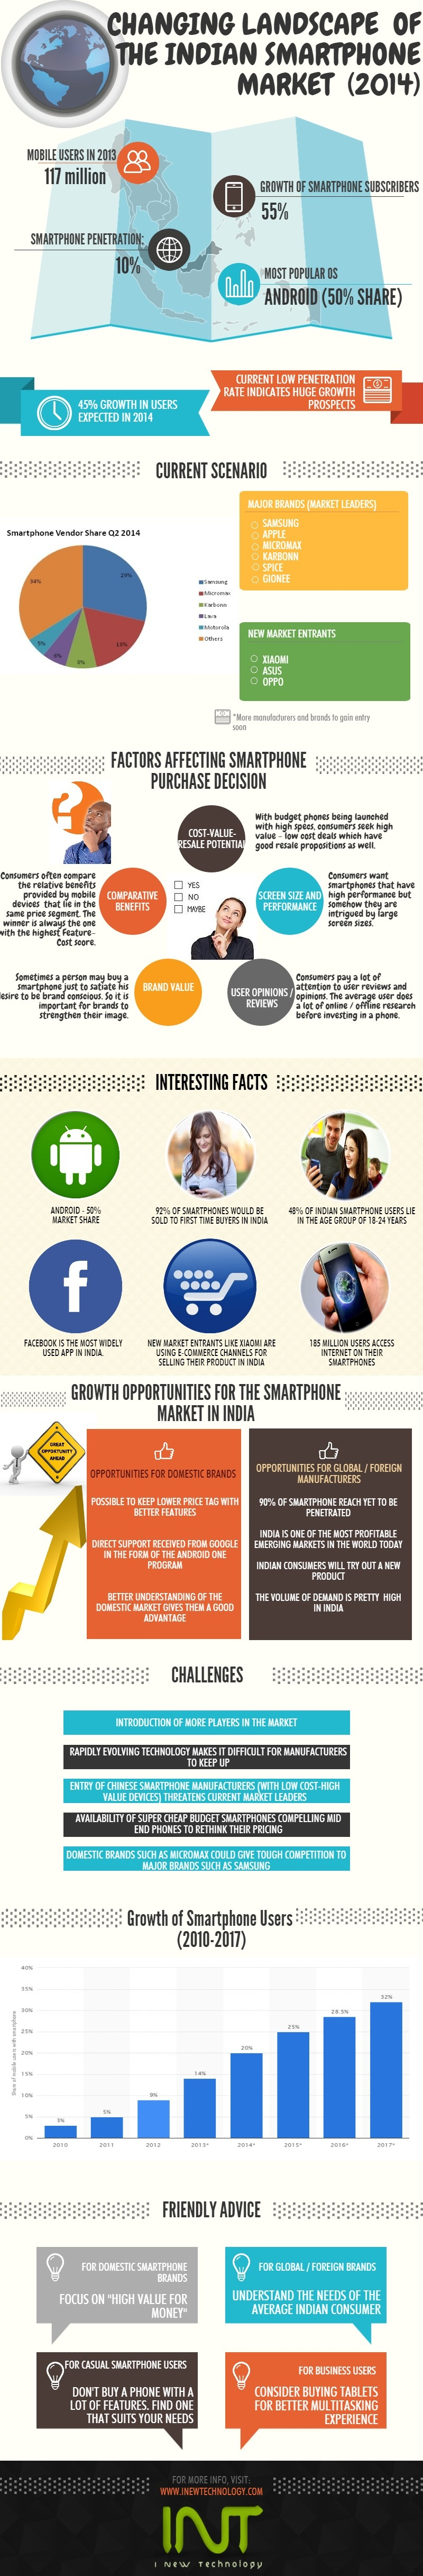 Indian's smartphone market in 2014 (INFOGRAPHIC)